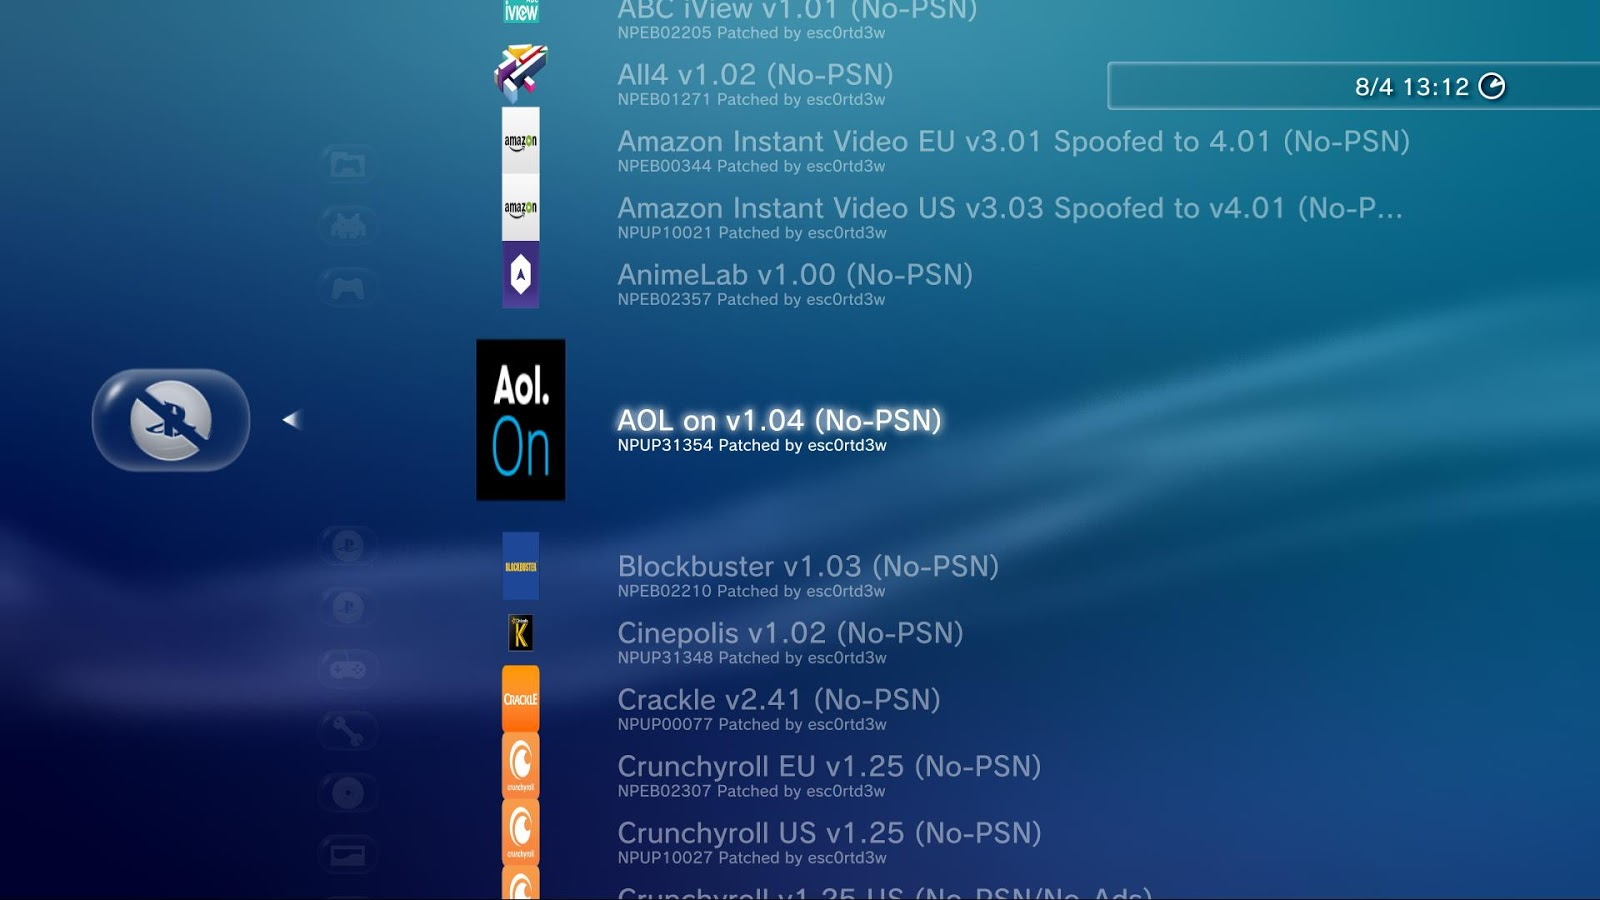 PS3 XMB Package Downloader (XMBPD) v0 70 - Consoleinfo